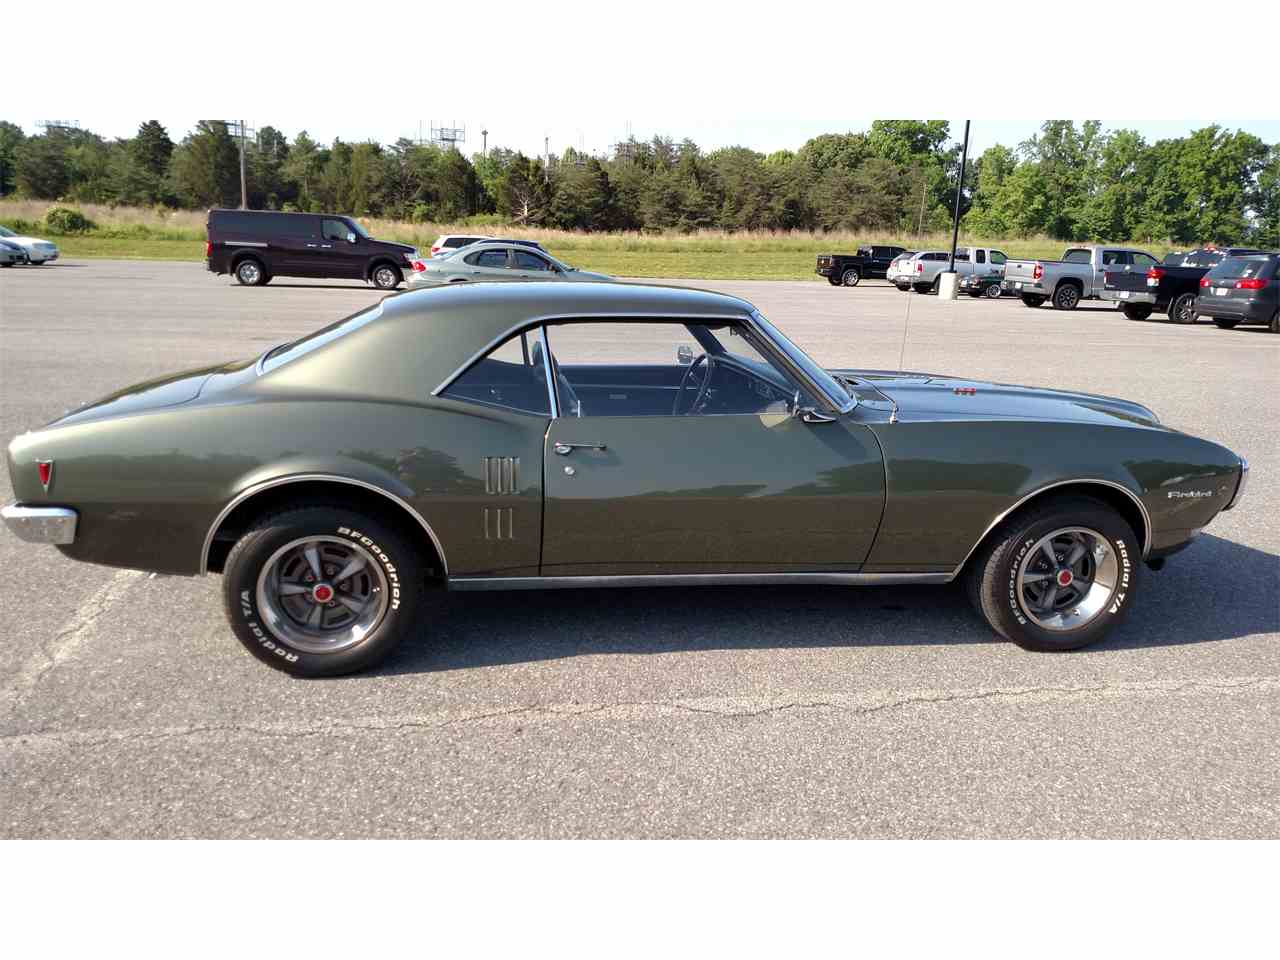 Large Picture of '68 Pontiac Firebird - $31,495.00 Offered by a Private Seller - NI9T